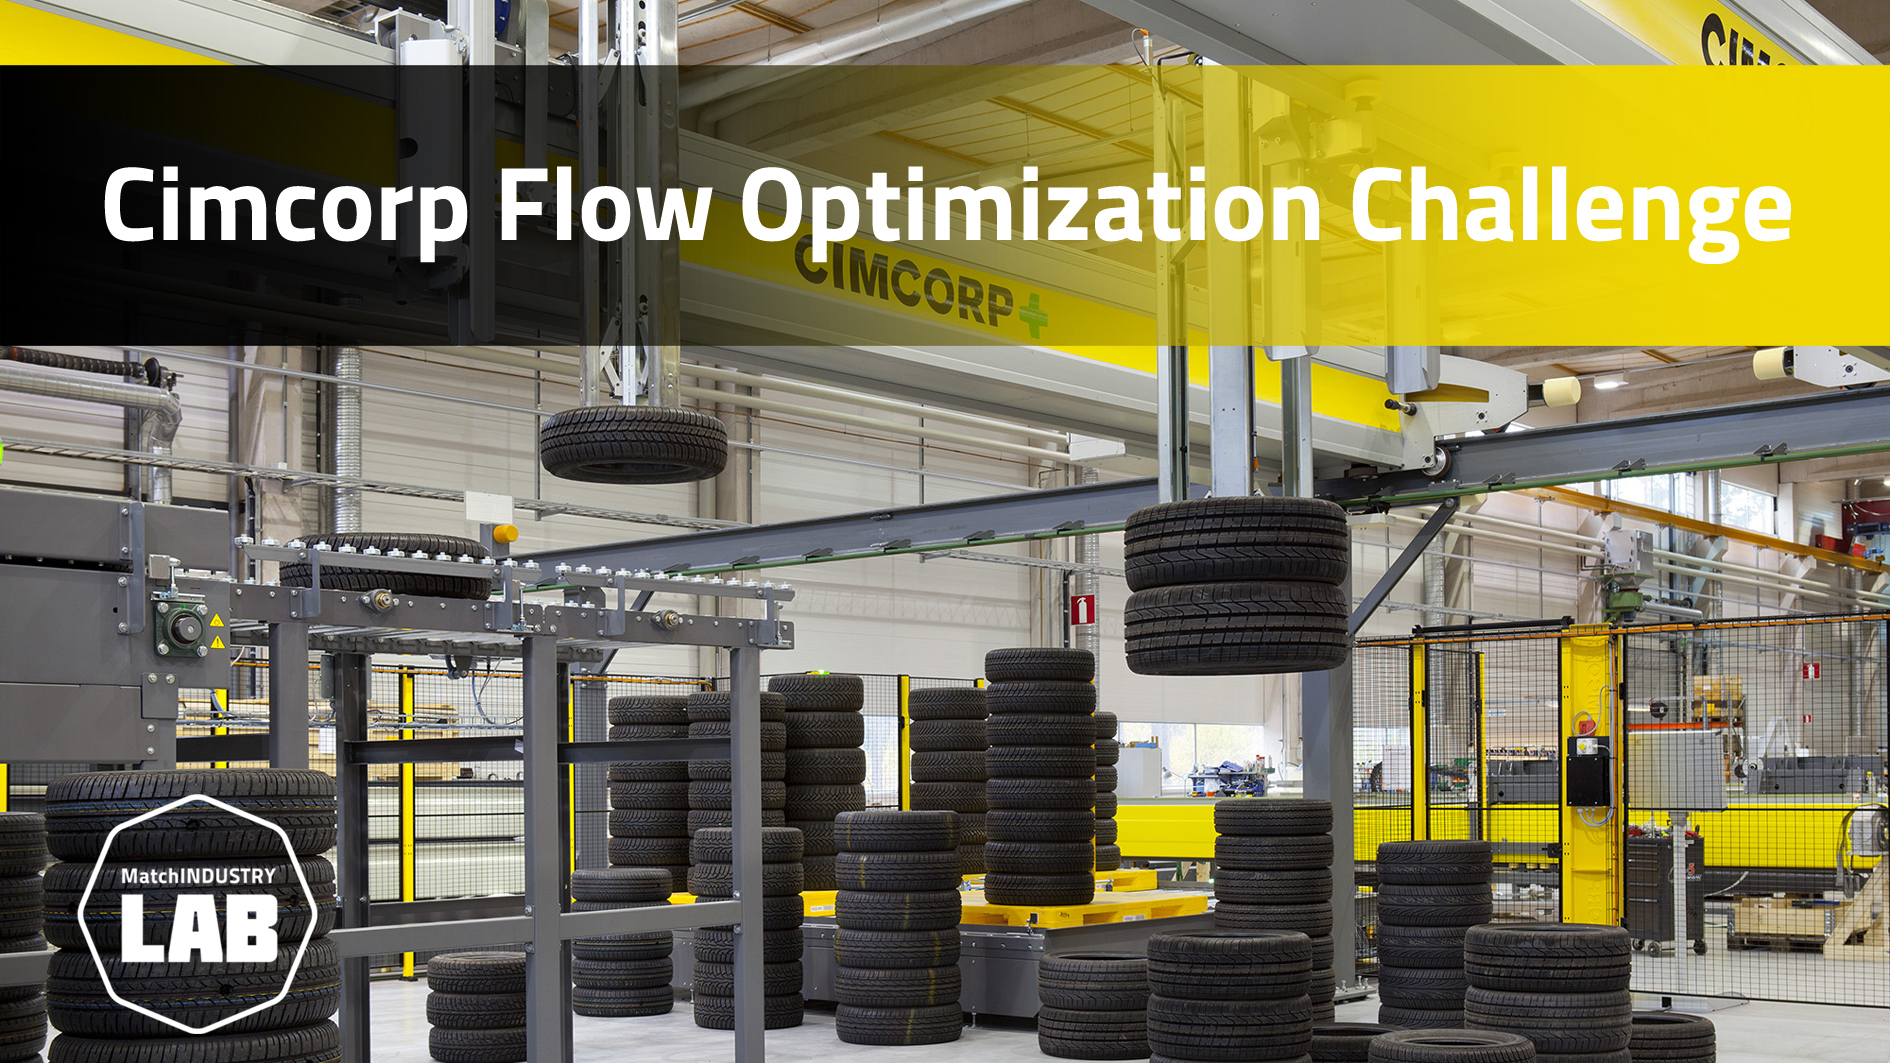 Cimcorp Flow Optimization Challenge